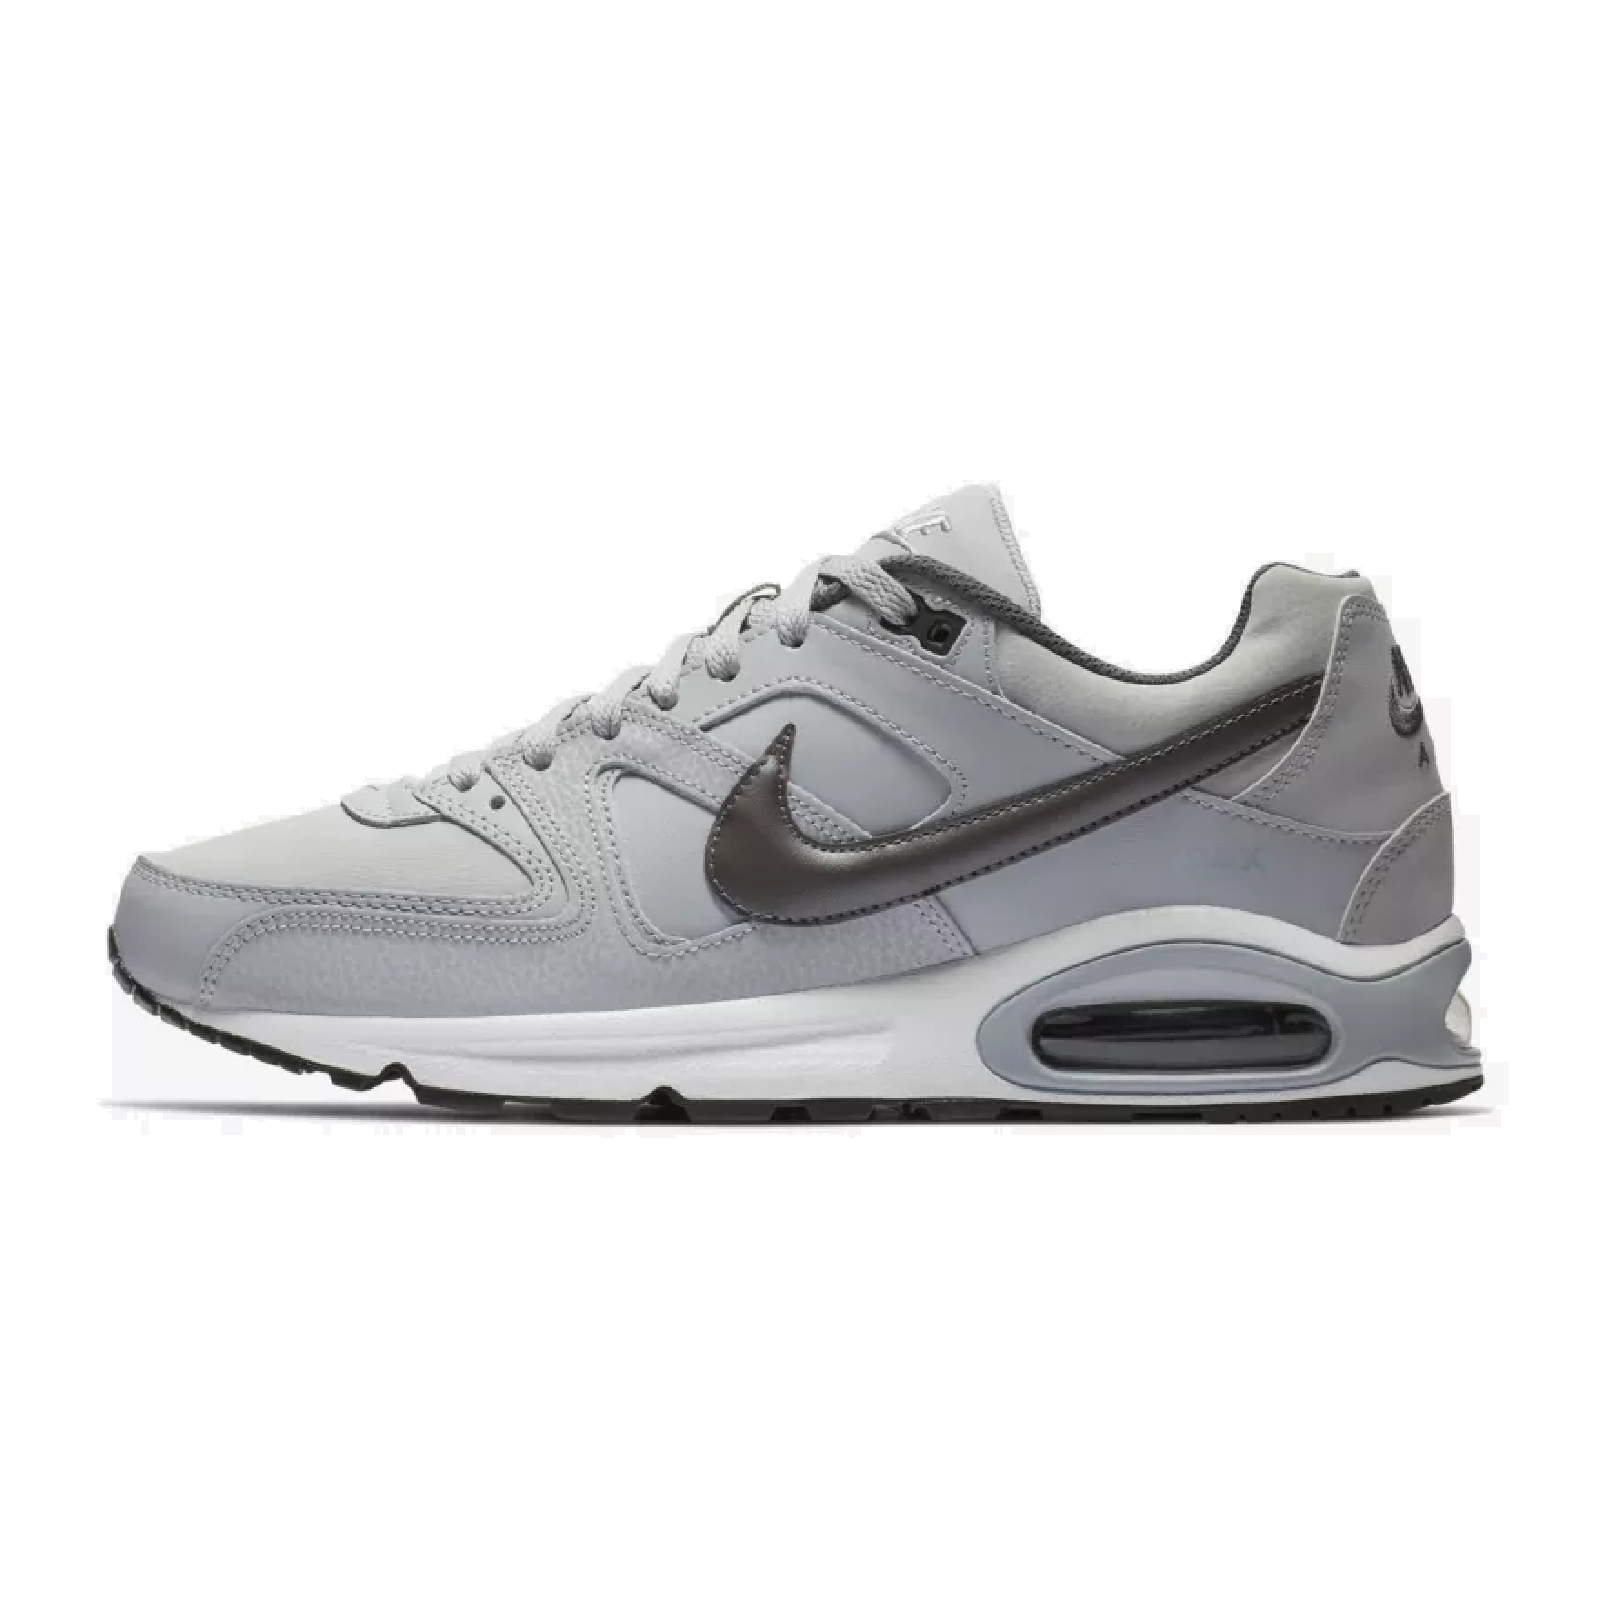 3768cc5736 Nike Air Max Command Leather Sneaker Sport Shoes gray/dark gray/white  749760-012